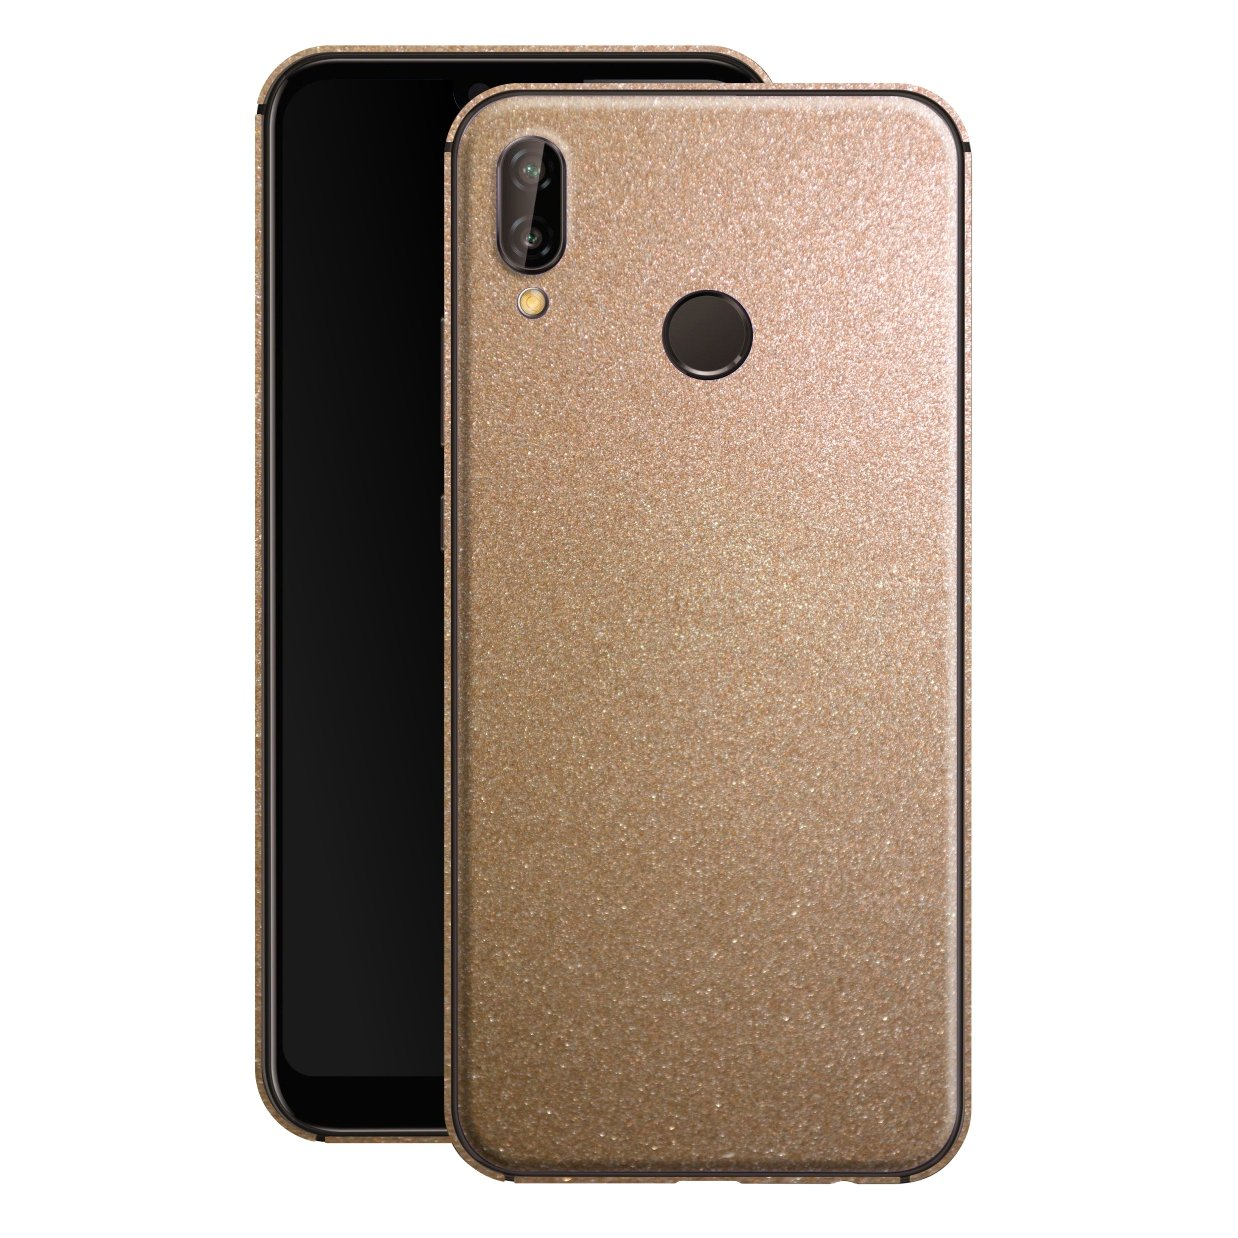 Huawei P20 LITE Antique Bronze Metallic Skin, Decal, Wrap, Protector, Cover by EasySkinz | EasySkinz.com